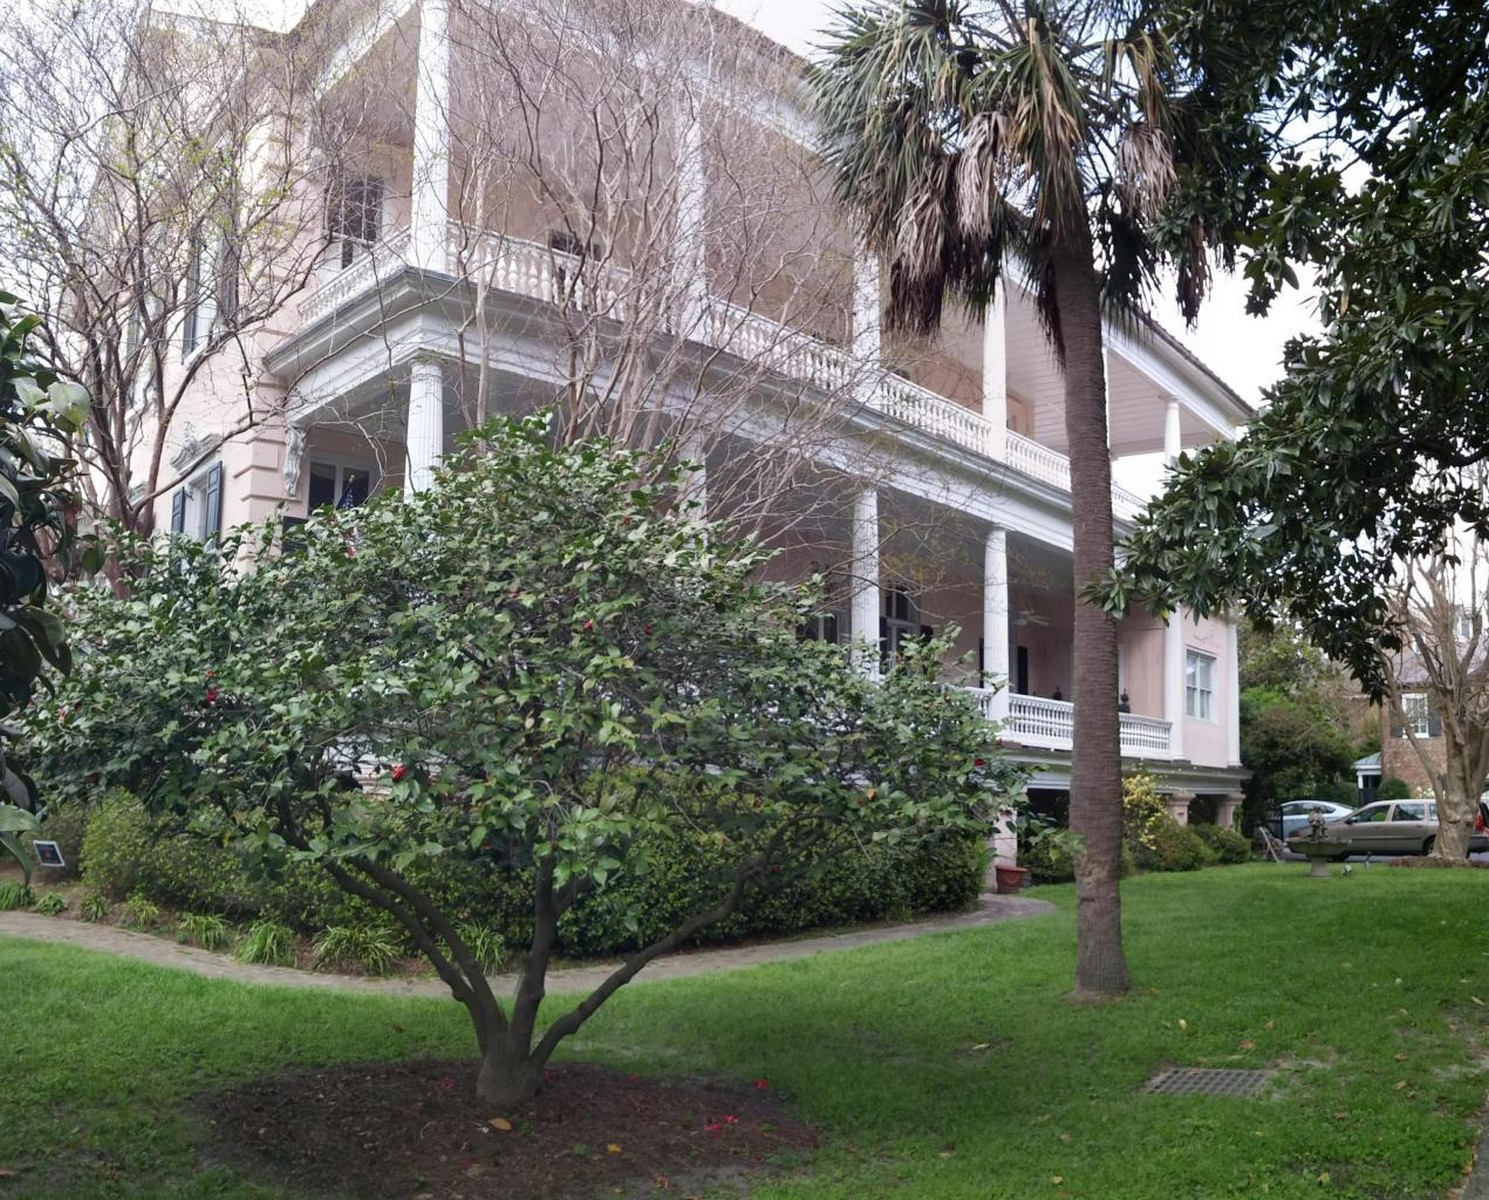 Single Family Home for Sale at Third Floor Condo in the Beauregard House 192 Ashley Avenue Unit B Charleston, South Carolina, 29403 United States